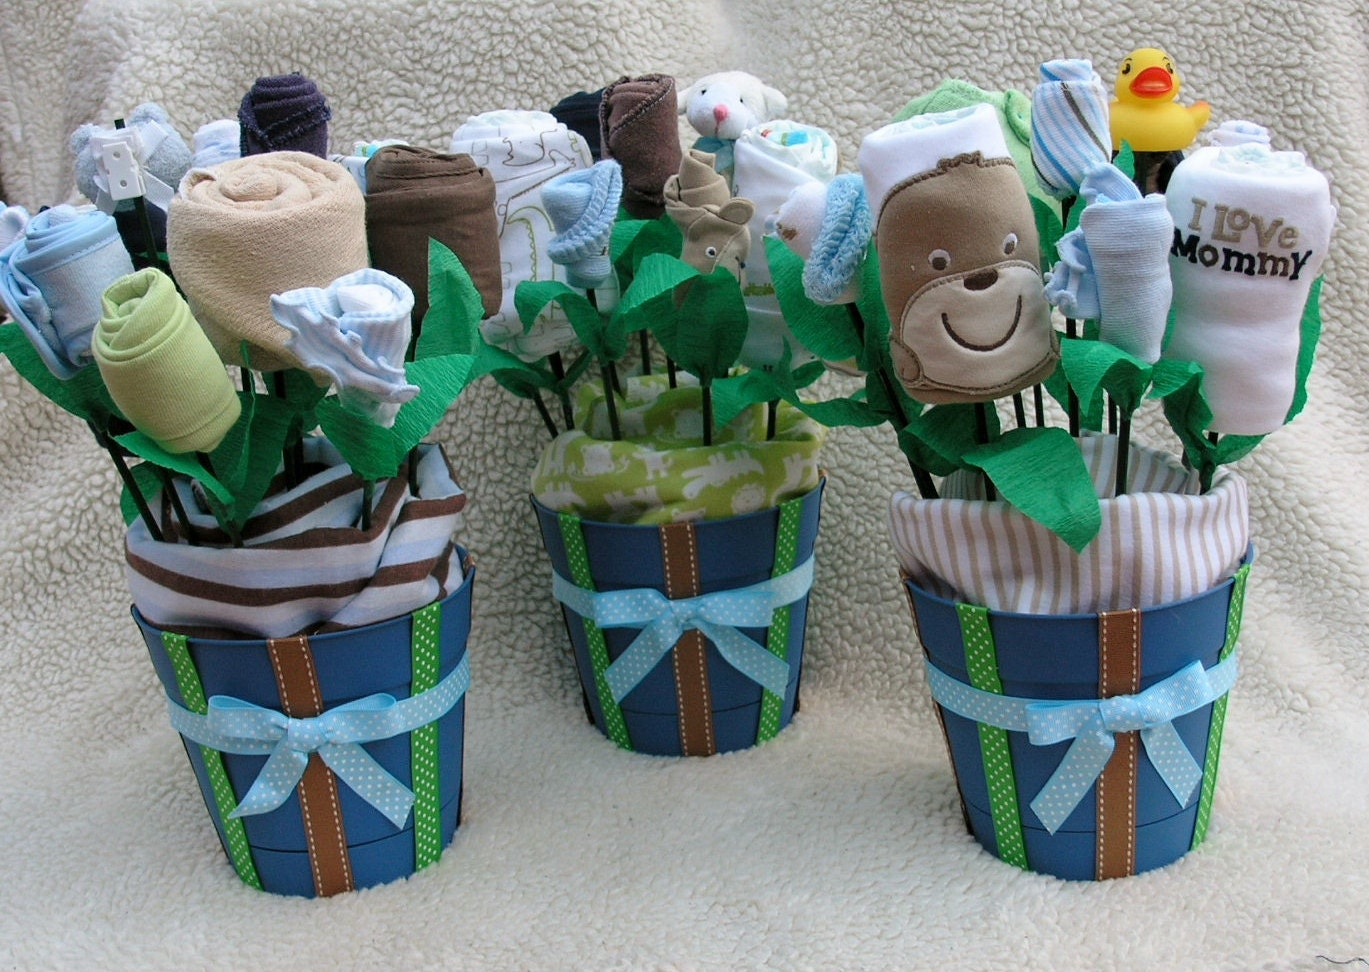 Duck baby shower on pinterest rubber duck baby boy for Baby showers pictures for decoration